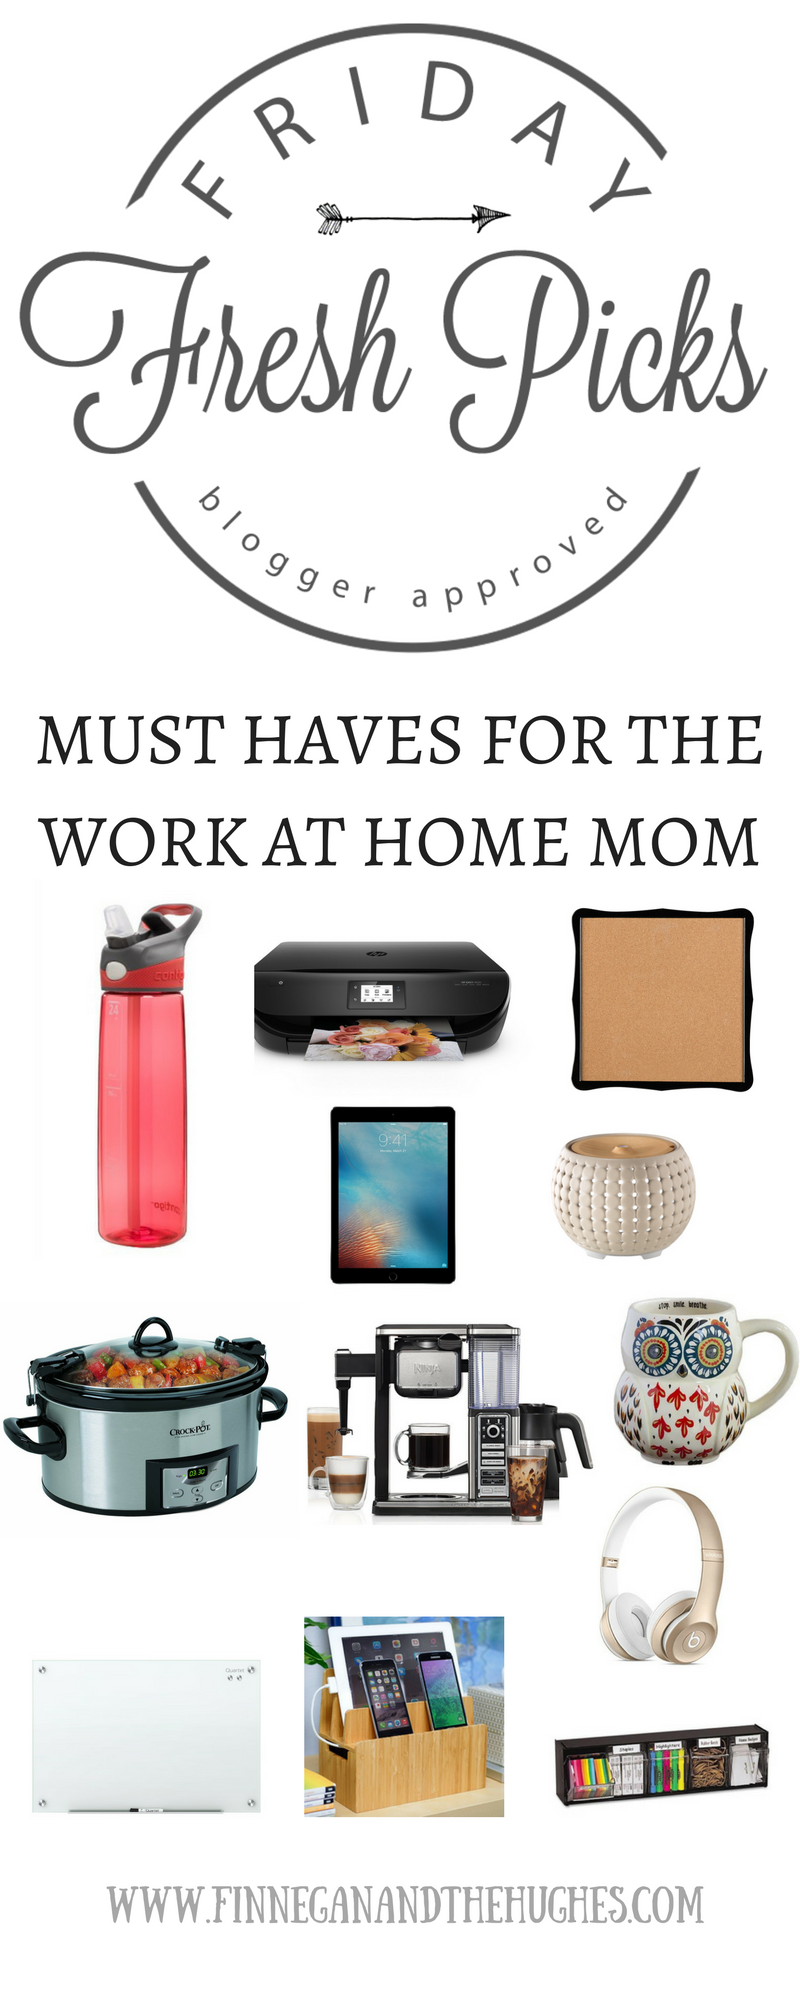 FRESH PICKS: MUST HAVES FOR THE WORK AT HOME MOM